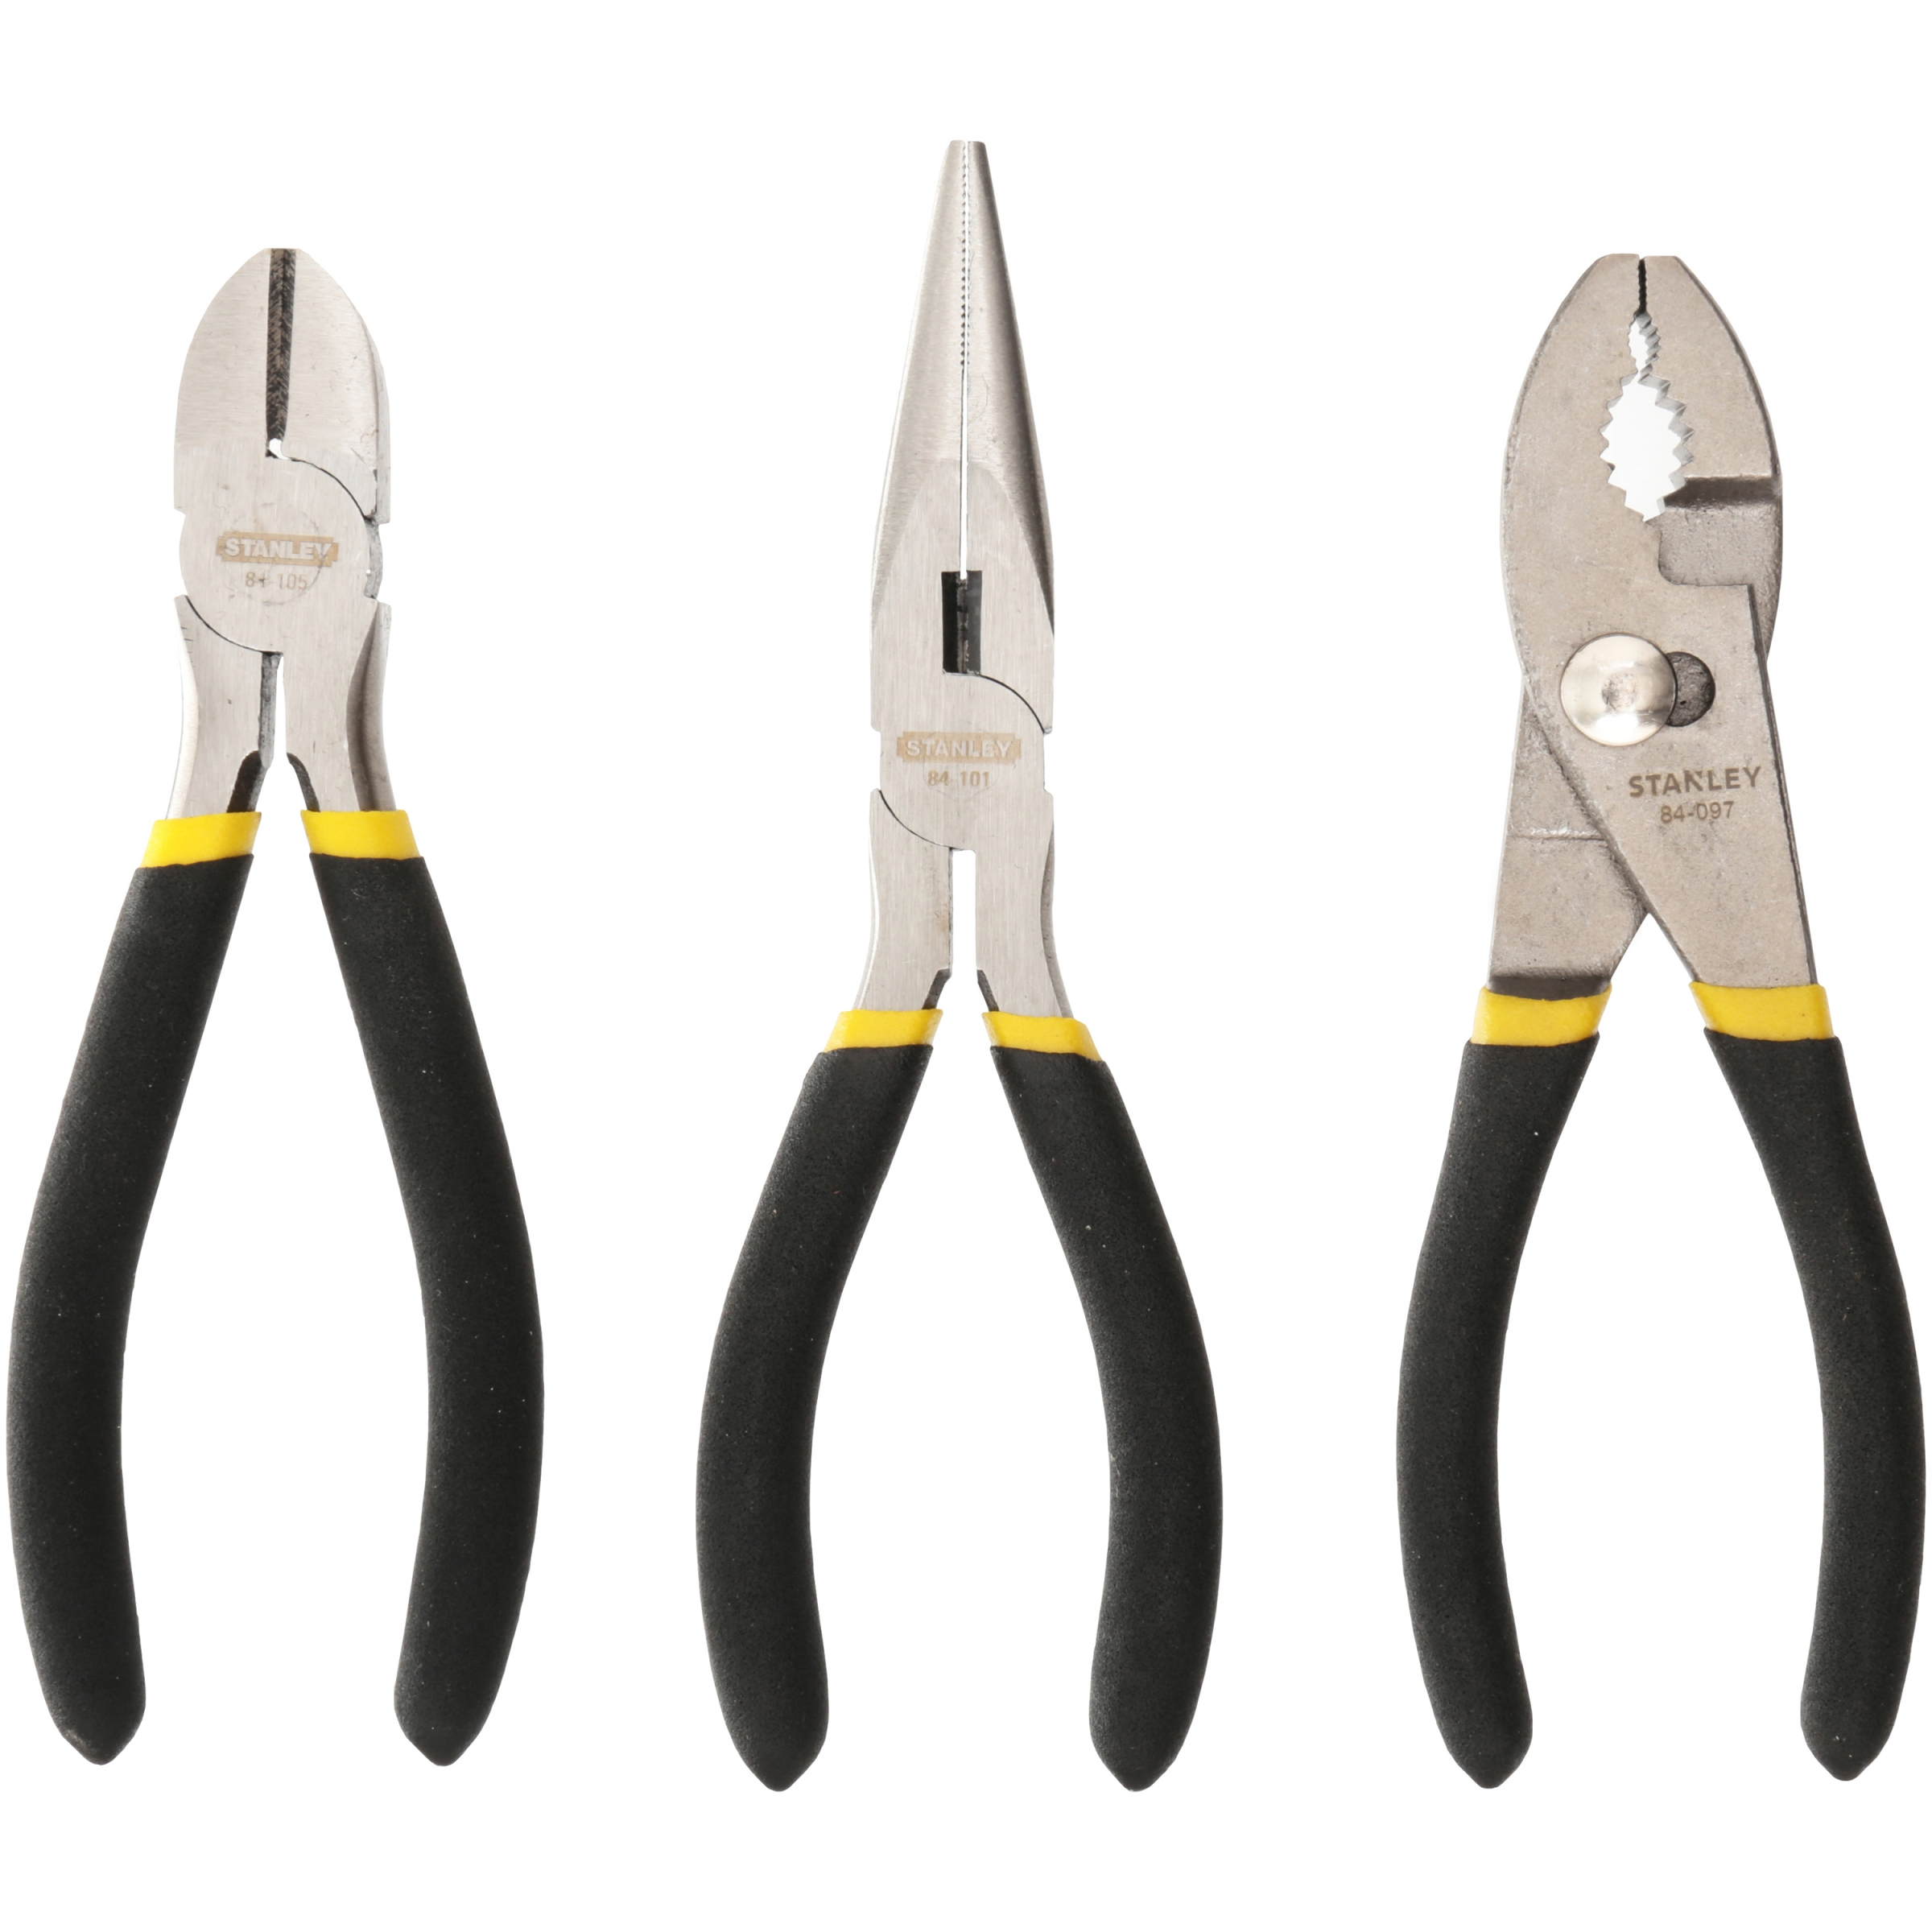 Pliers Set Stanley Pliers Set 3 Pc Carded Pack